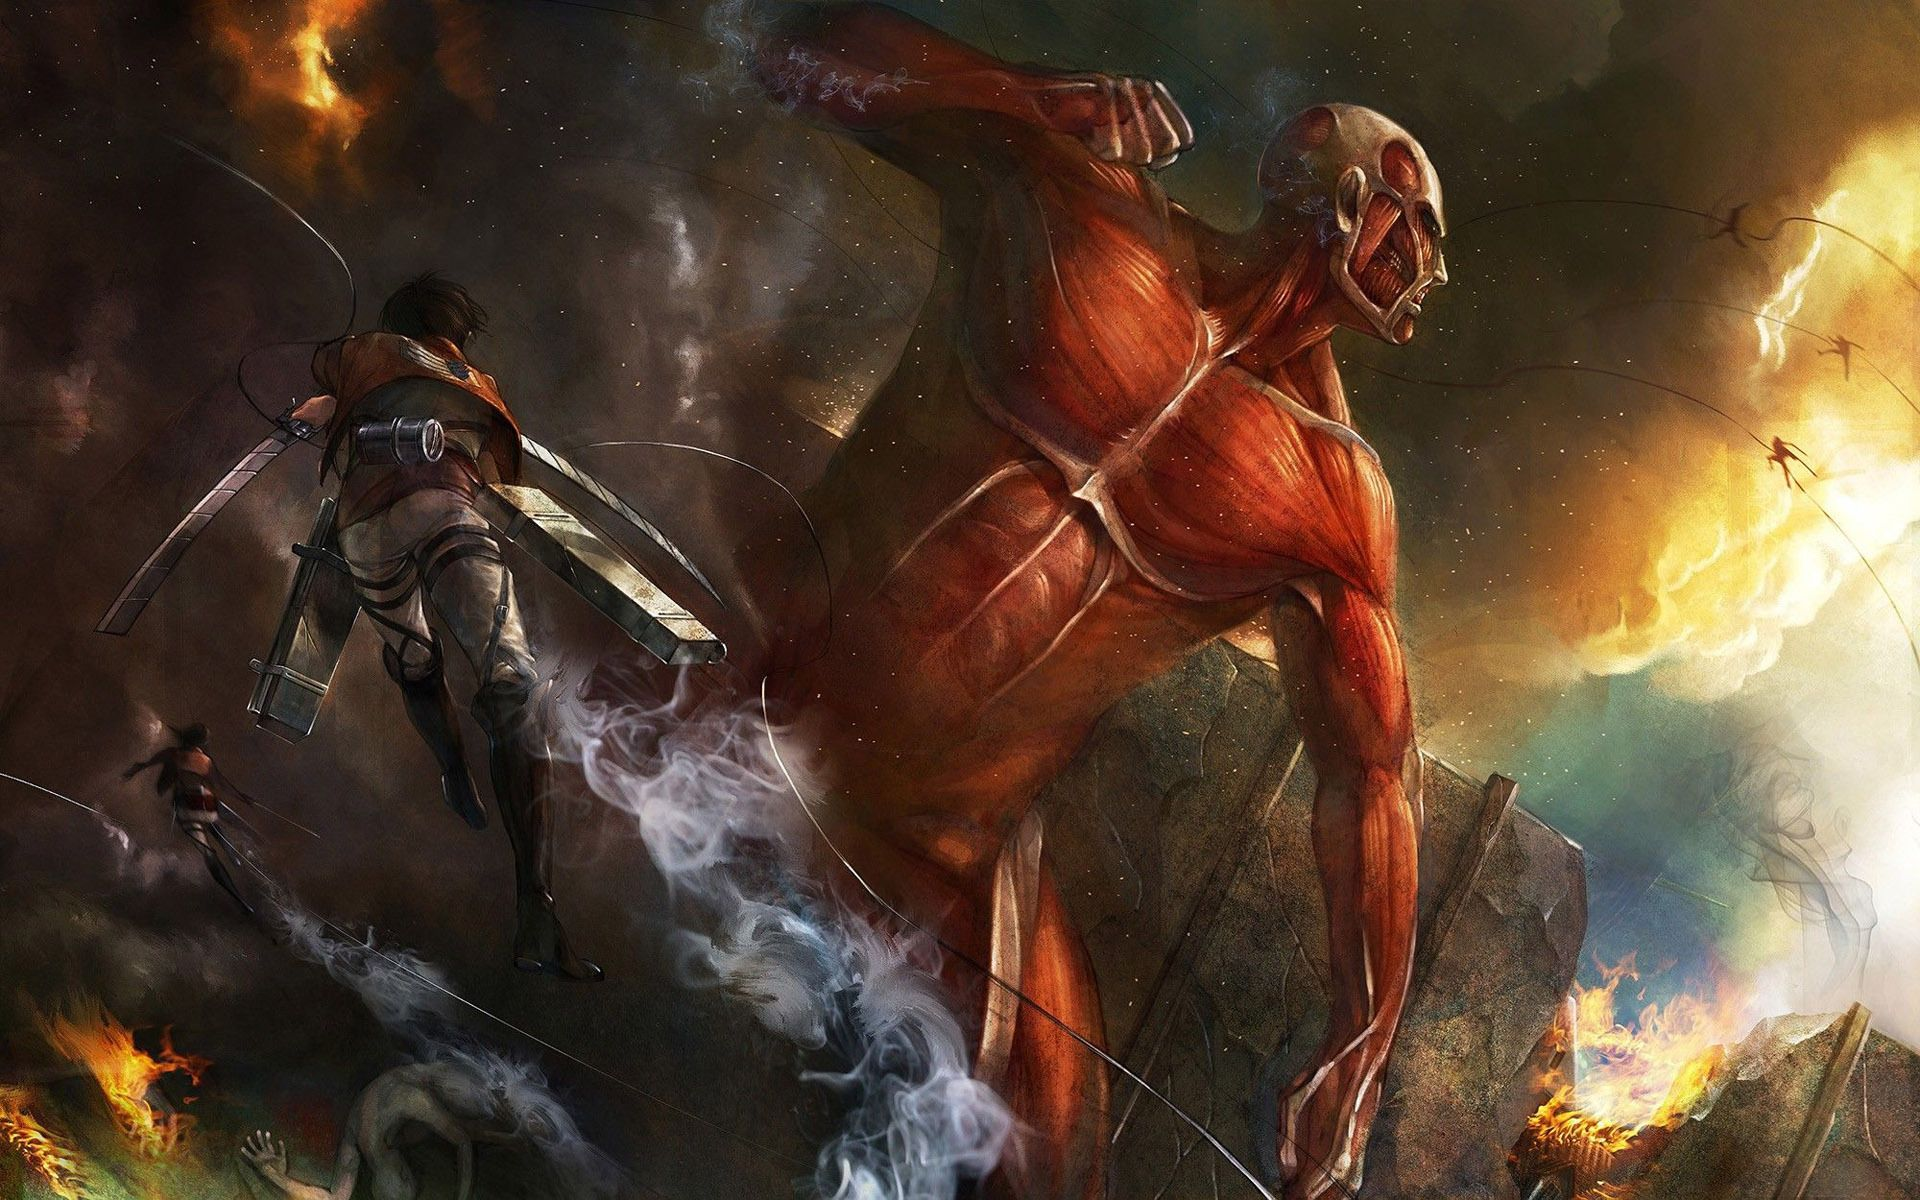 attack on titan wallpaper Google Search Attack on